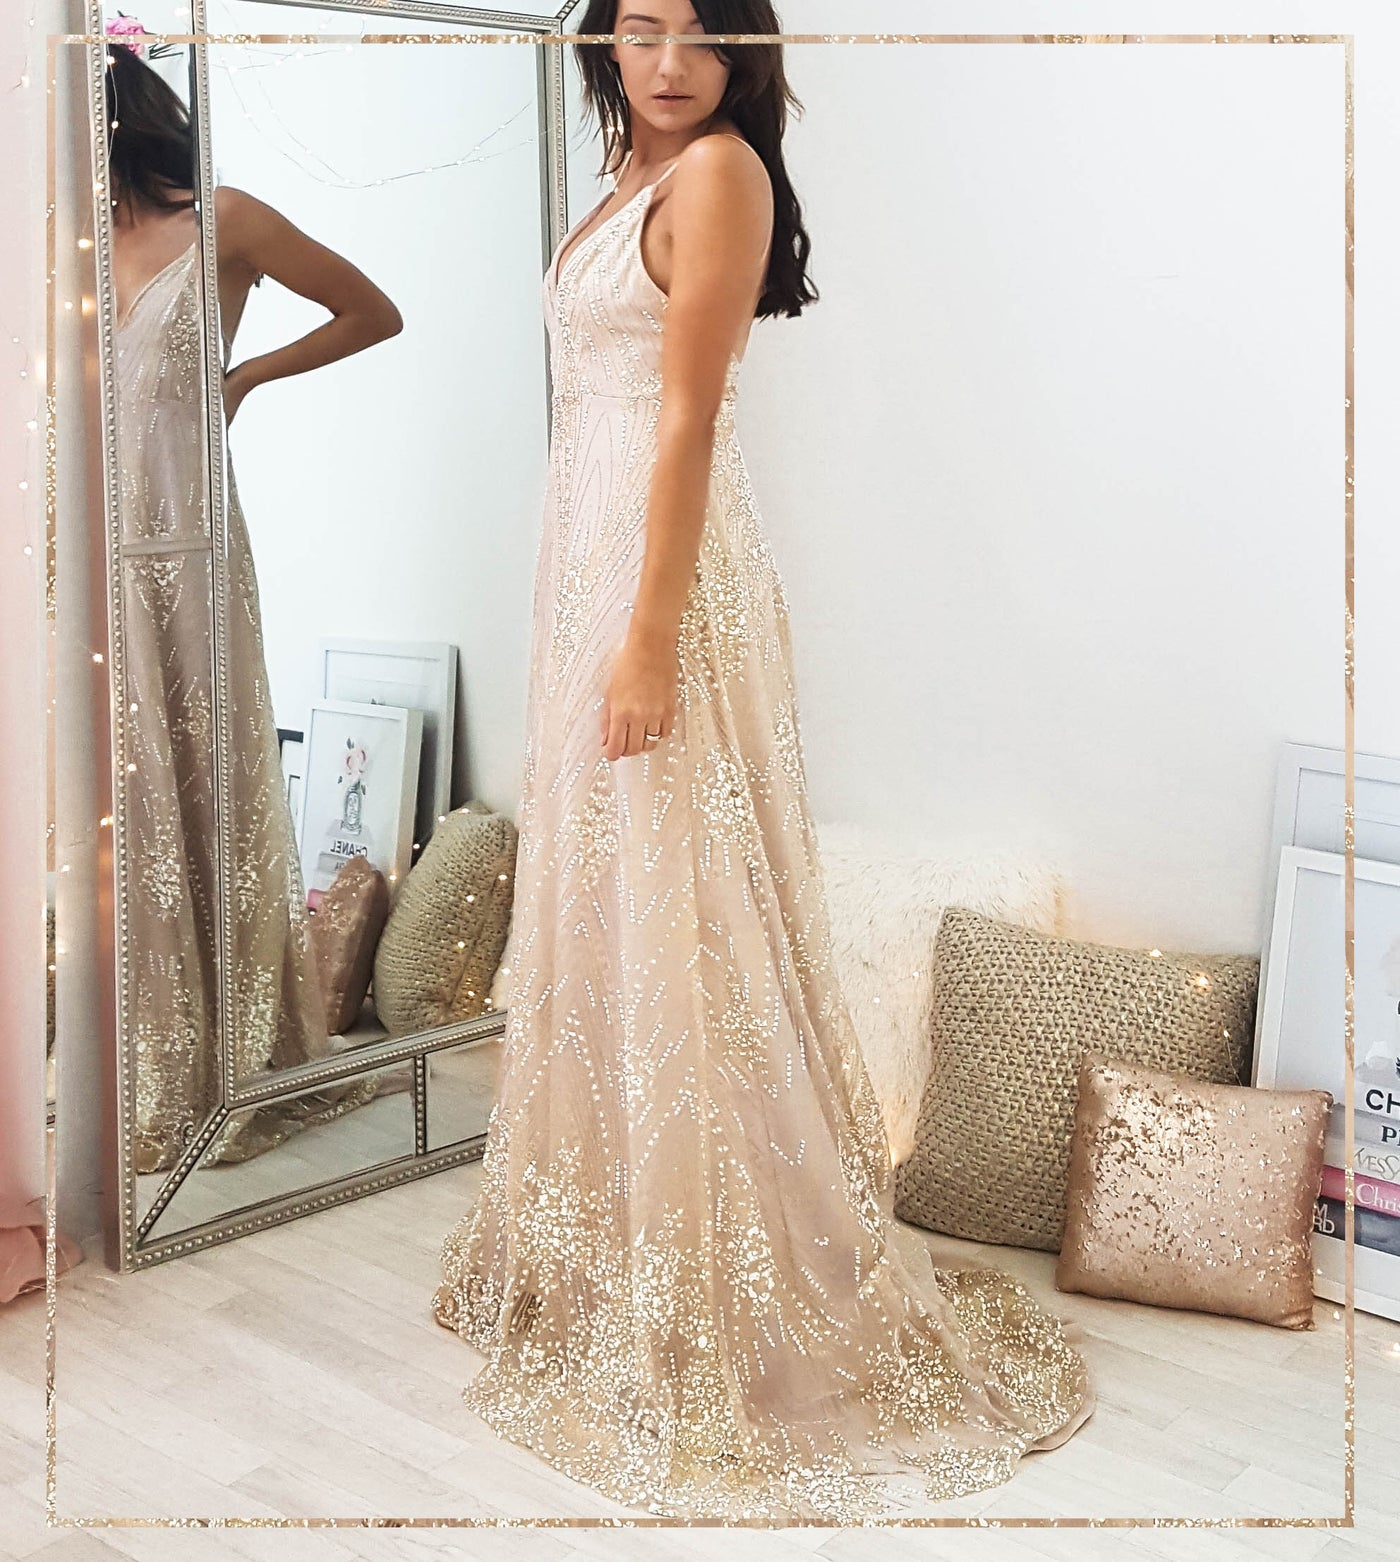 0f7bbf4198d Dont Buy A Prom Dress Online - Gomes Weine AG